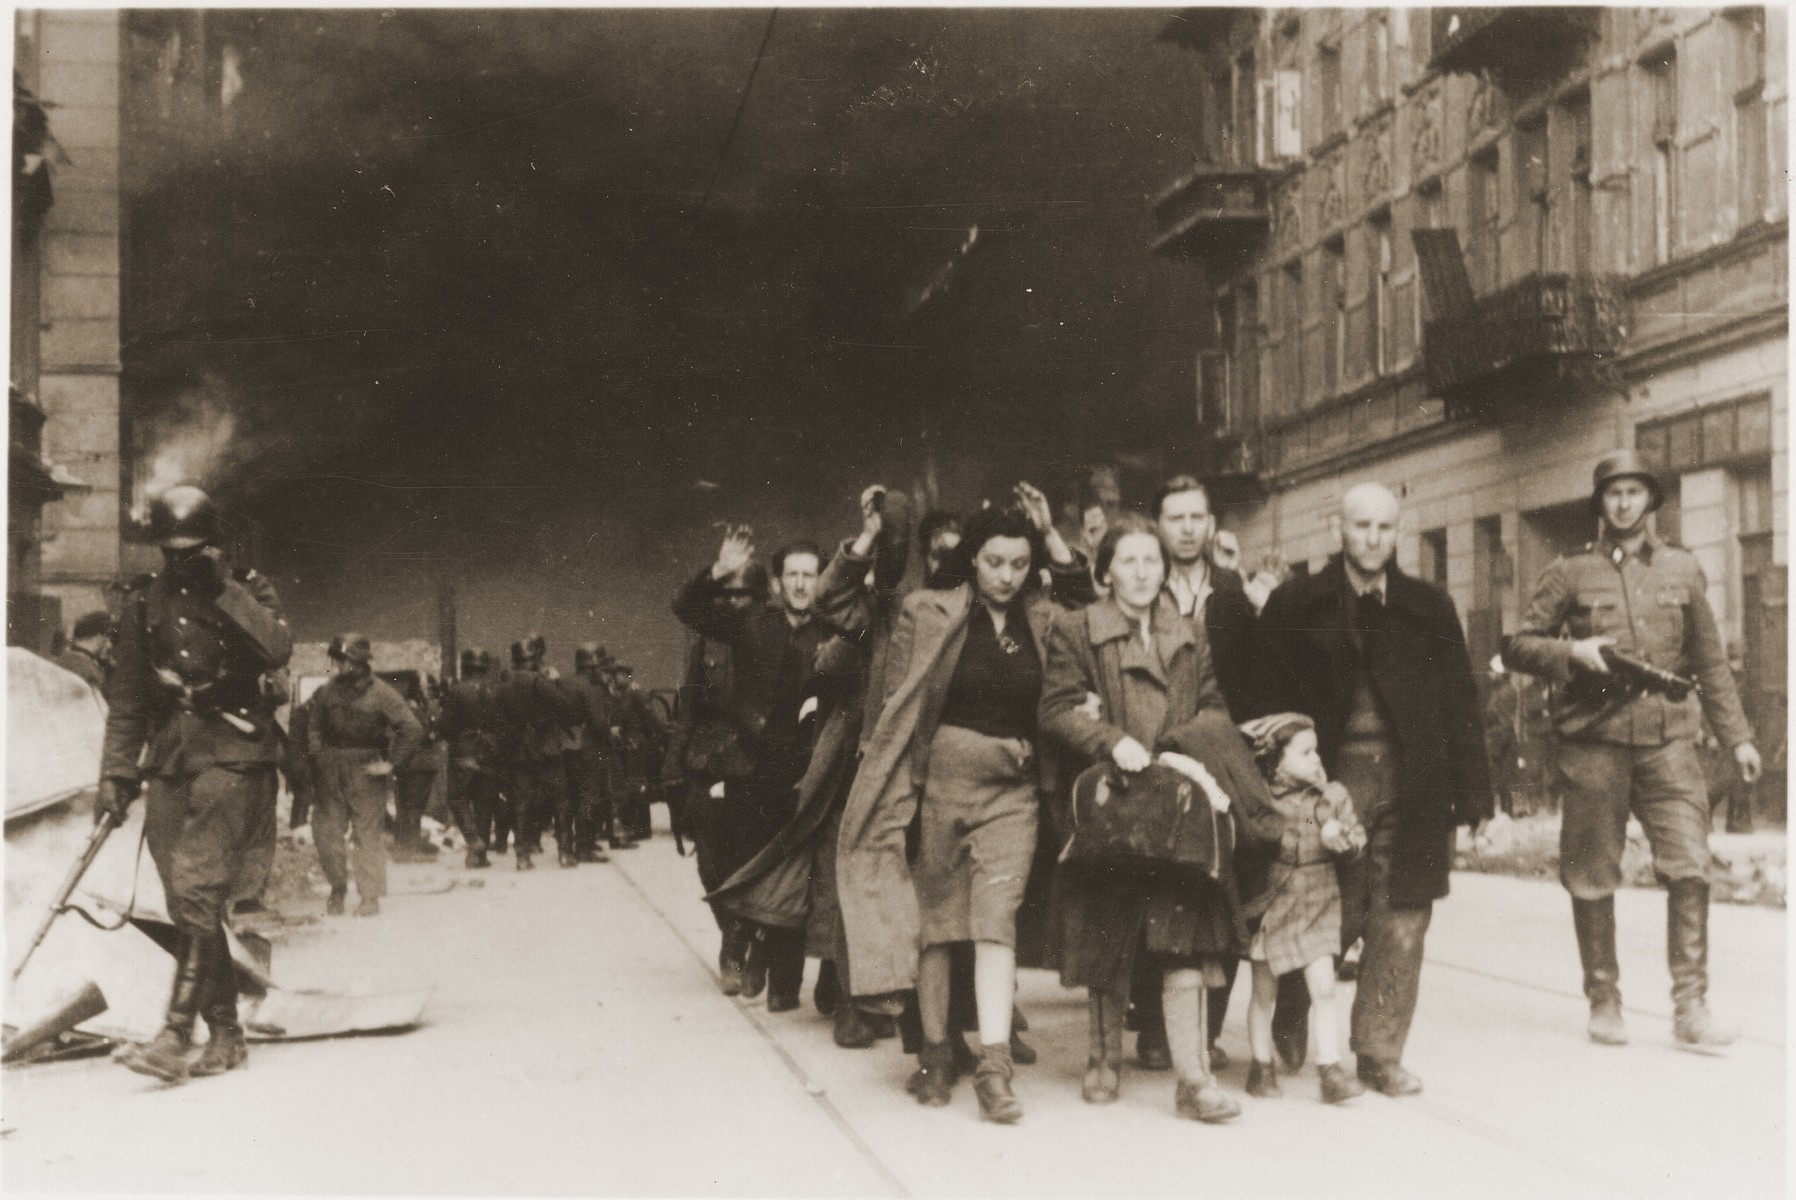 "Jews captured during the suppression of the Warsaw ghetto uprising are led away from the burning ghetto by SS guards.    The original German caption reads: ""Pulled from the bunkers by force.""    The woman at the head of the column, on the left, is Yehudit Neyer (born Tolub).  She is holding onto the right arm of her mother-in-law.  The child is the daughter of Yehudit and her father, Avraham Neyer, who can be seen to the little girl's left.  Avraham was a member of the Bund.  Of the four, only Avraham survived the war.  He currently lives in Israel."